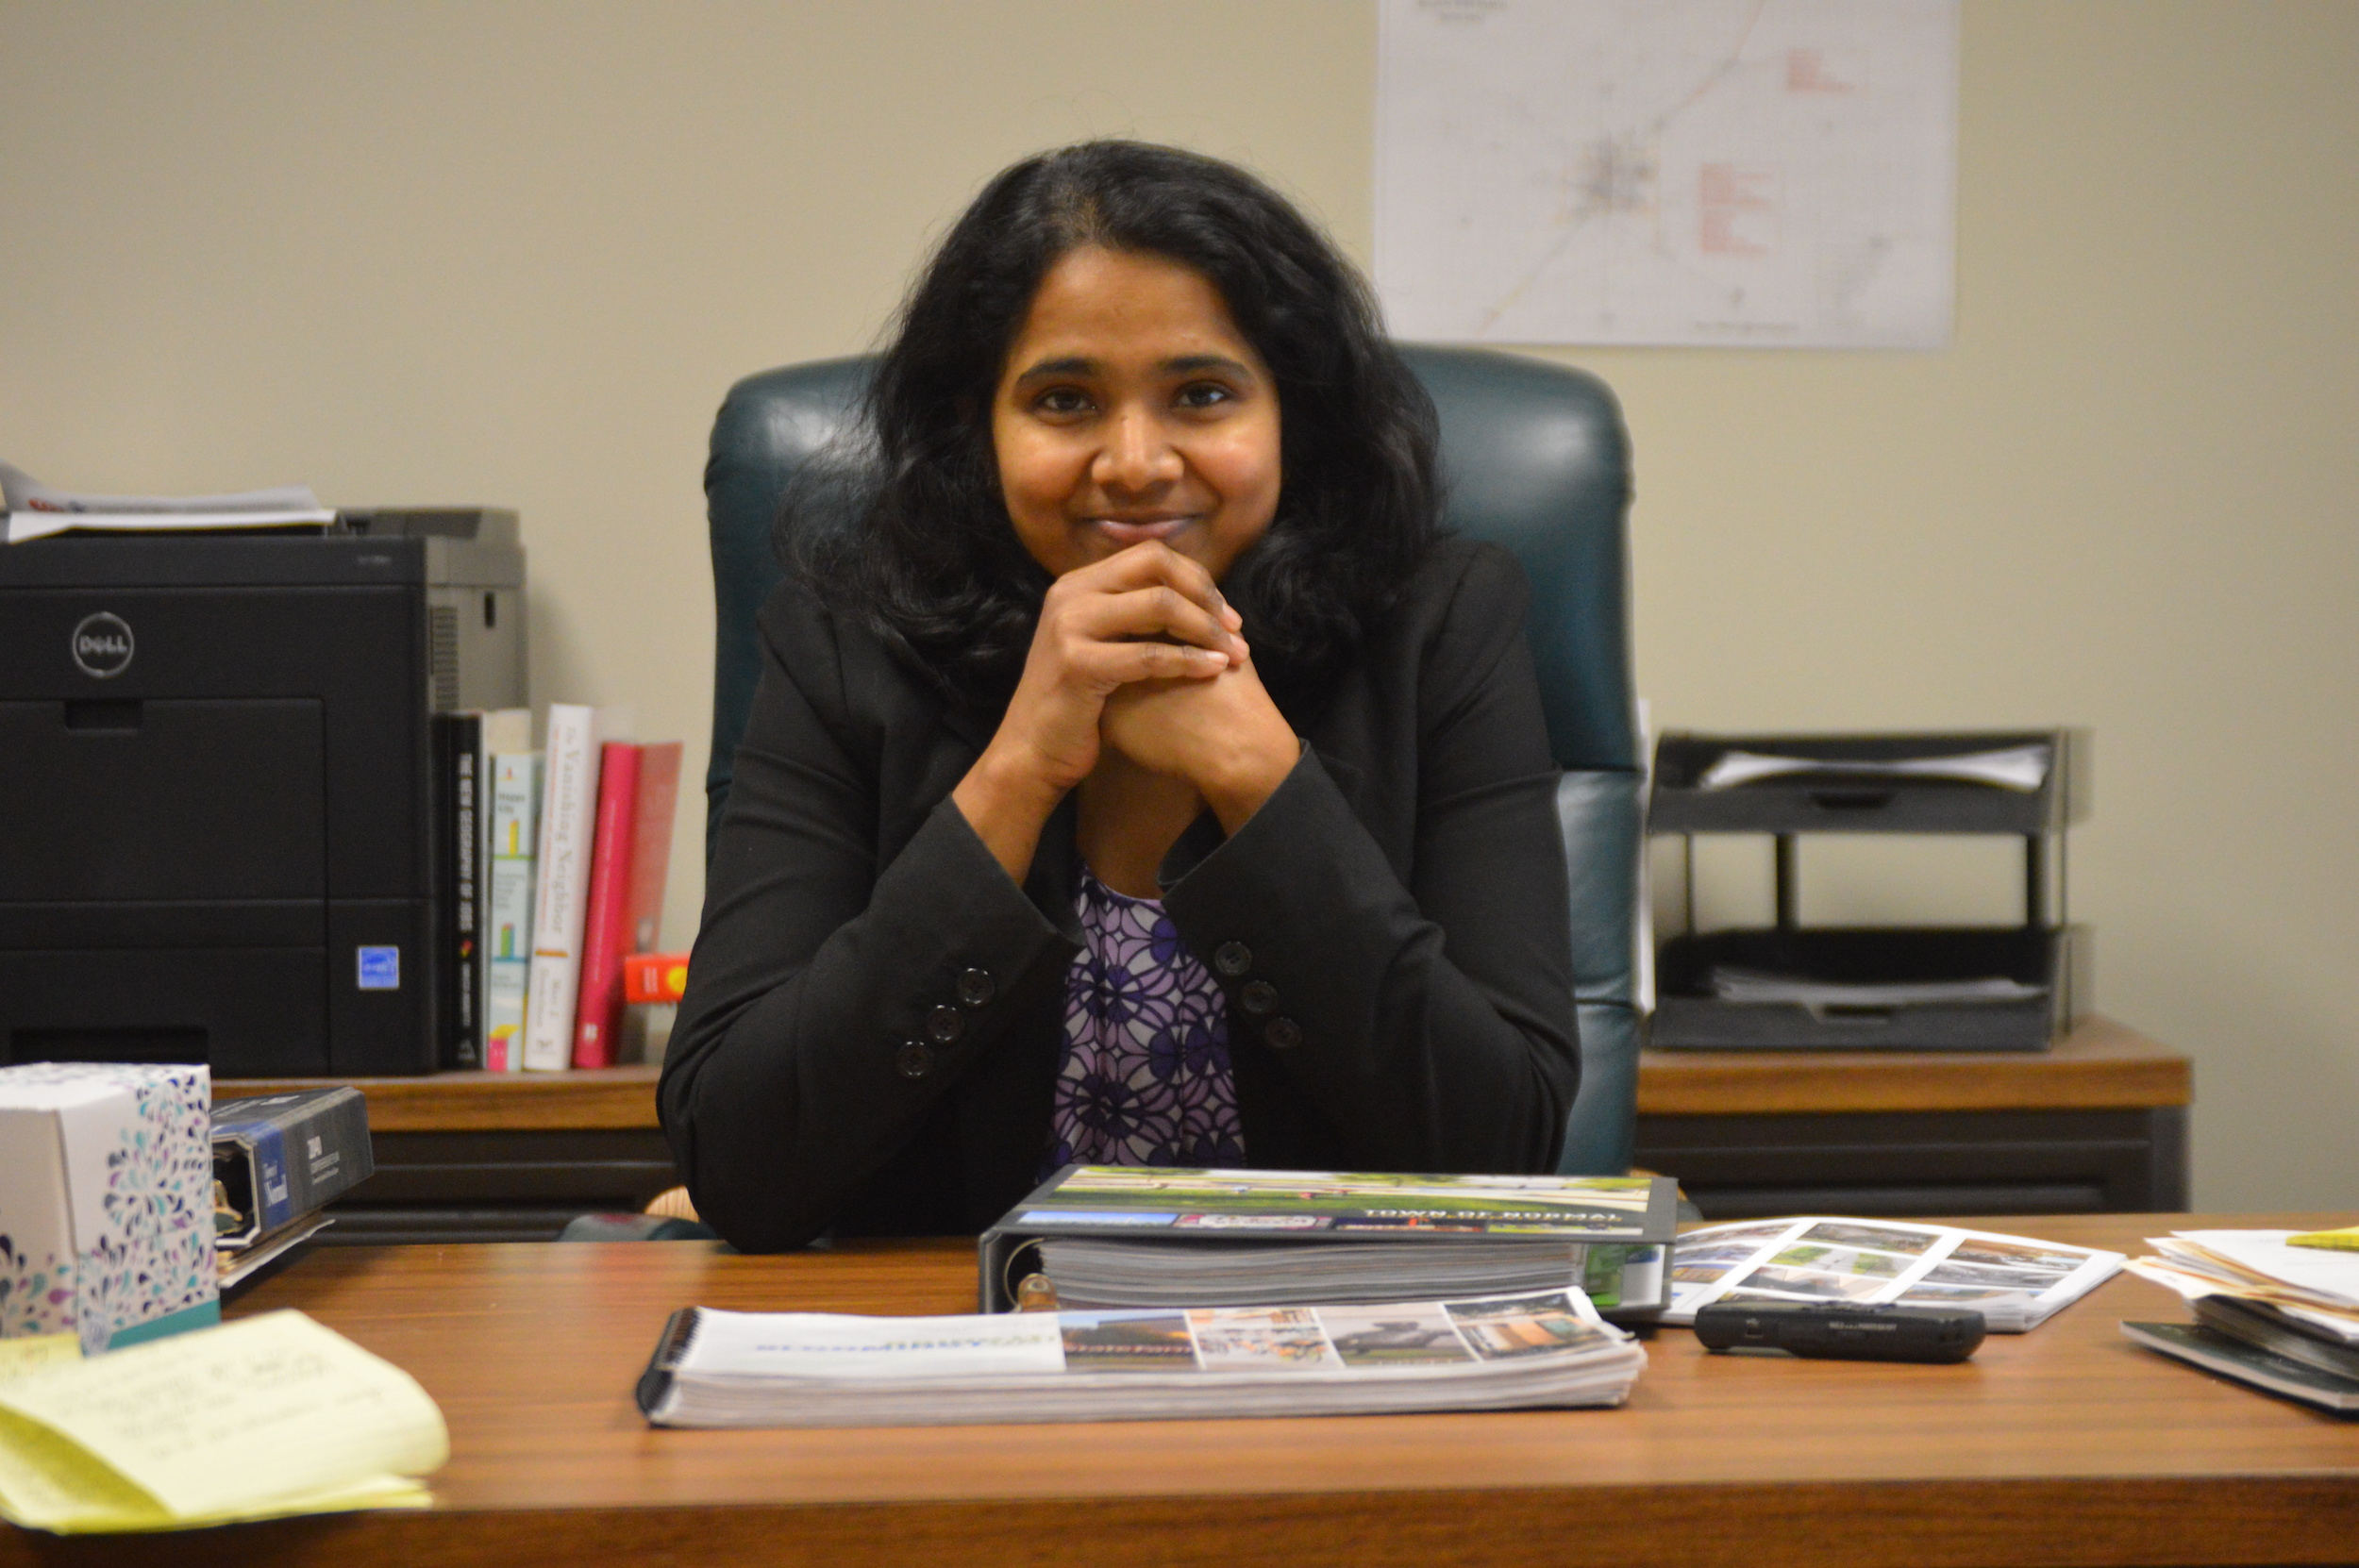 Vasudha Pinnamaraju worked as an architect before earning her master's in urban and regional planning from Iowa State University. She served the City of Decatur as a city and neighborhood planner before becoming Executive Director of the McLean County Regional Planning Commission. (Image Credit: Breanna Grow)